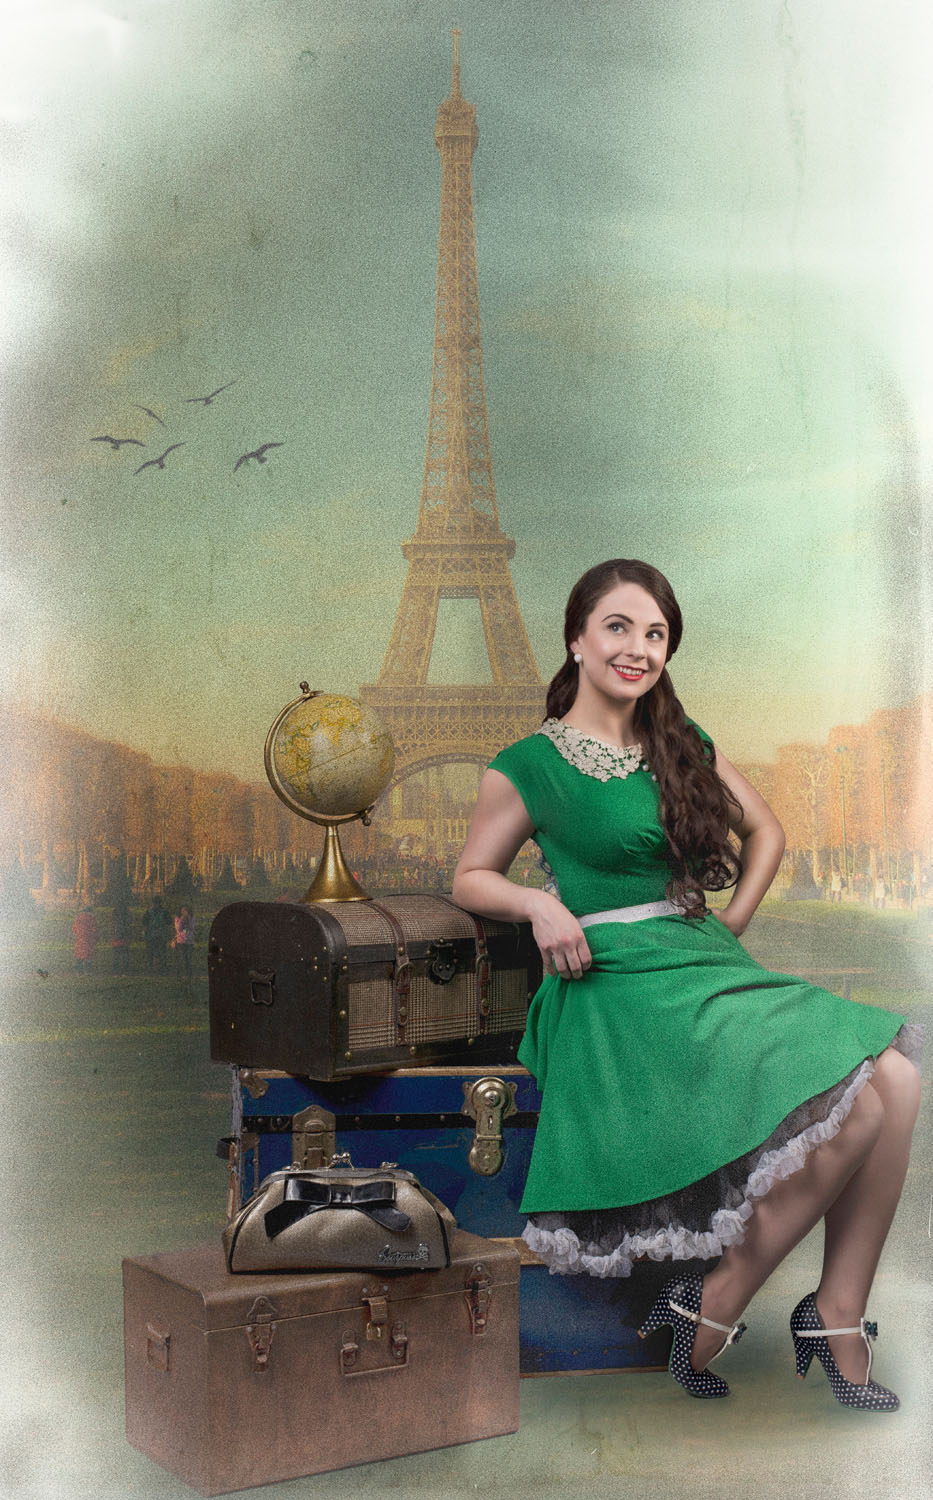 1_Beth_Pinup_Paris_V3_edited.jpg